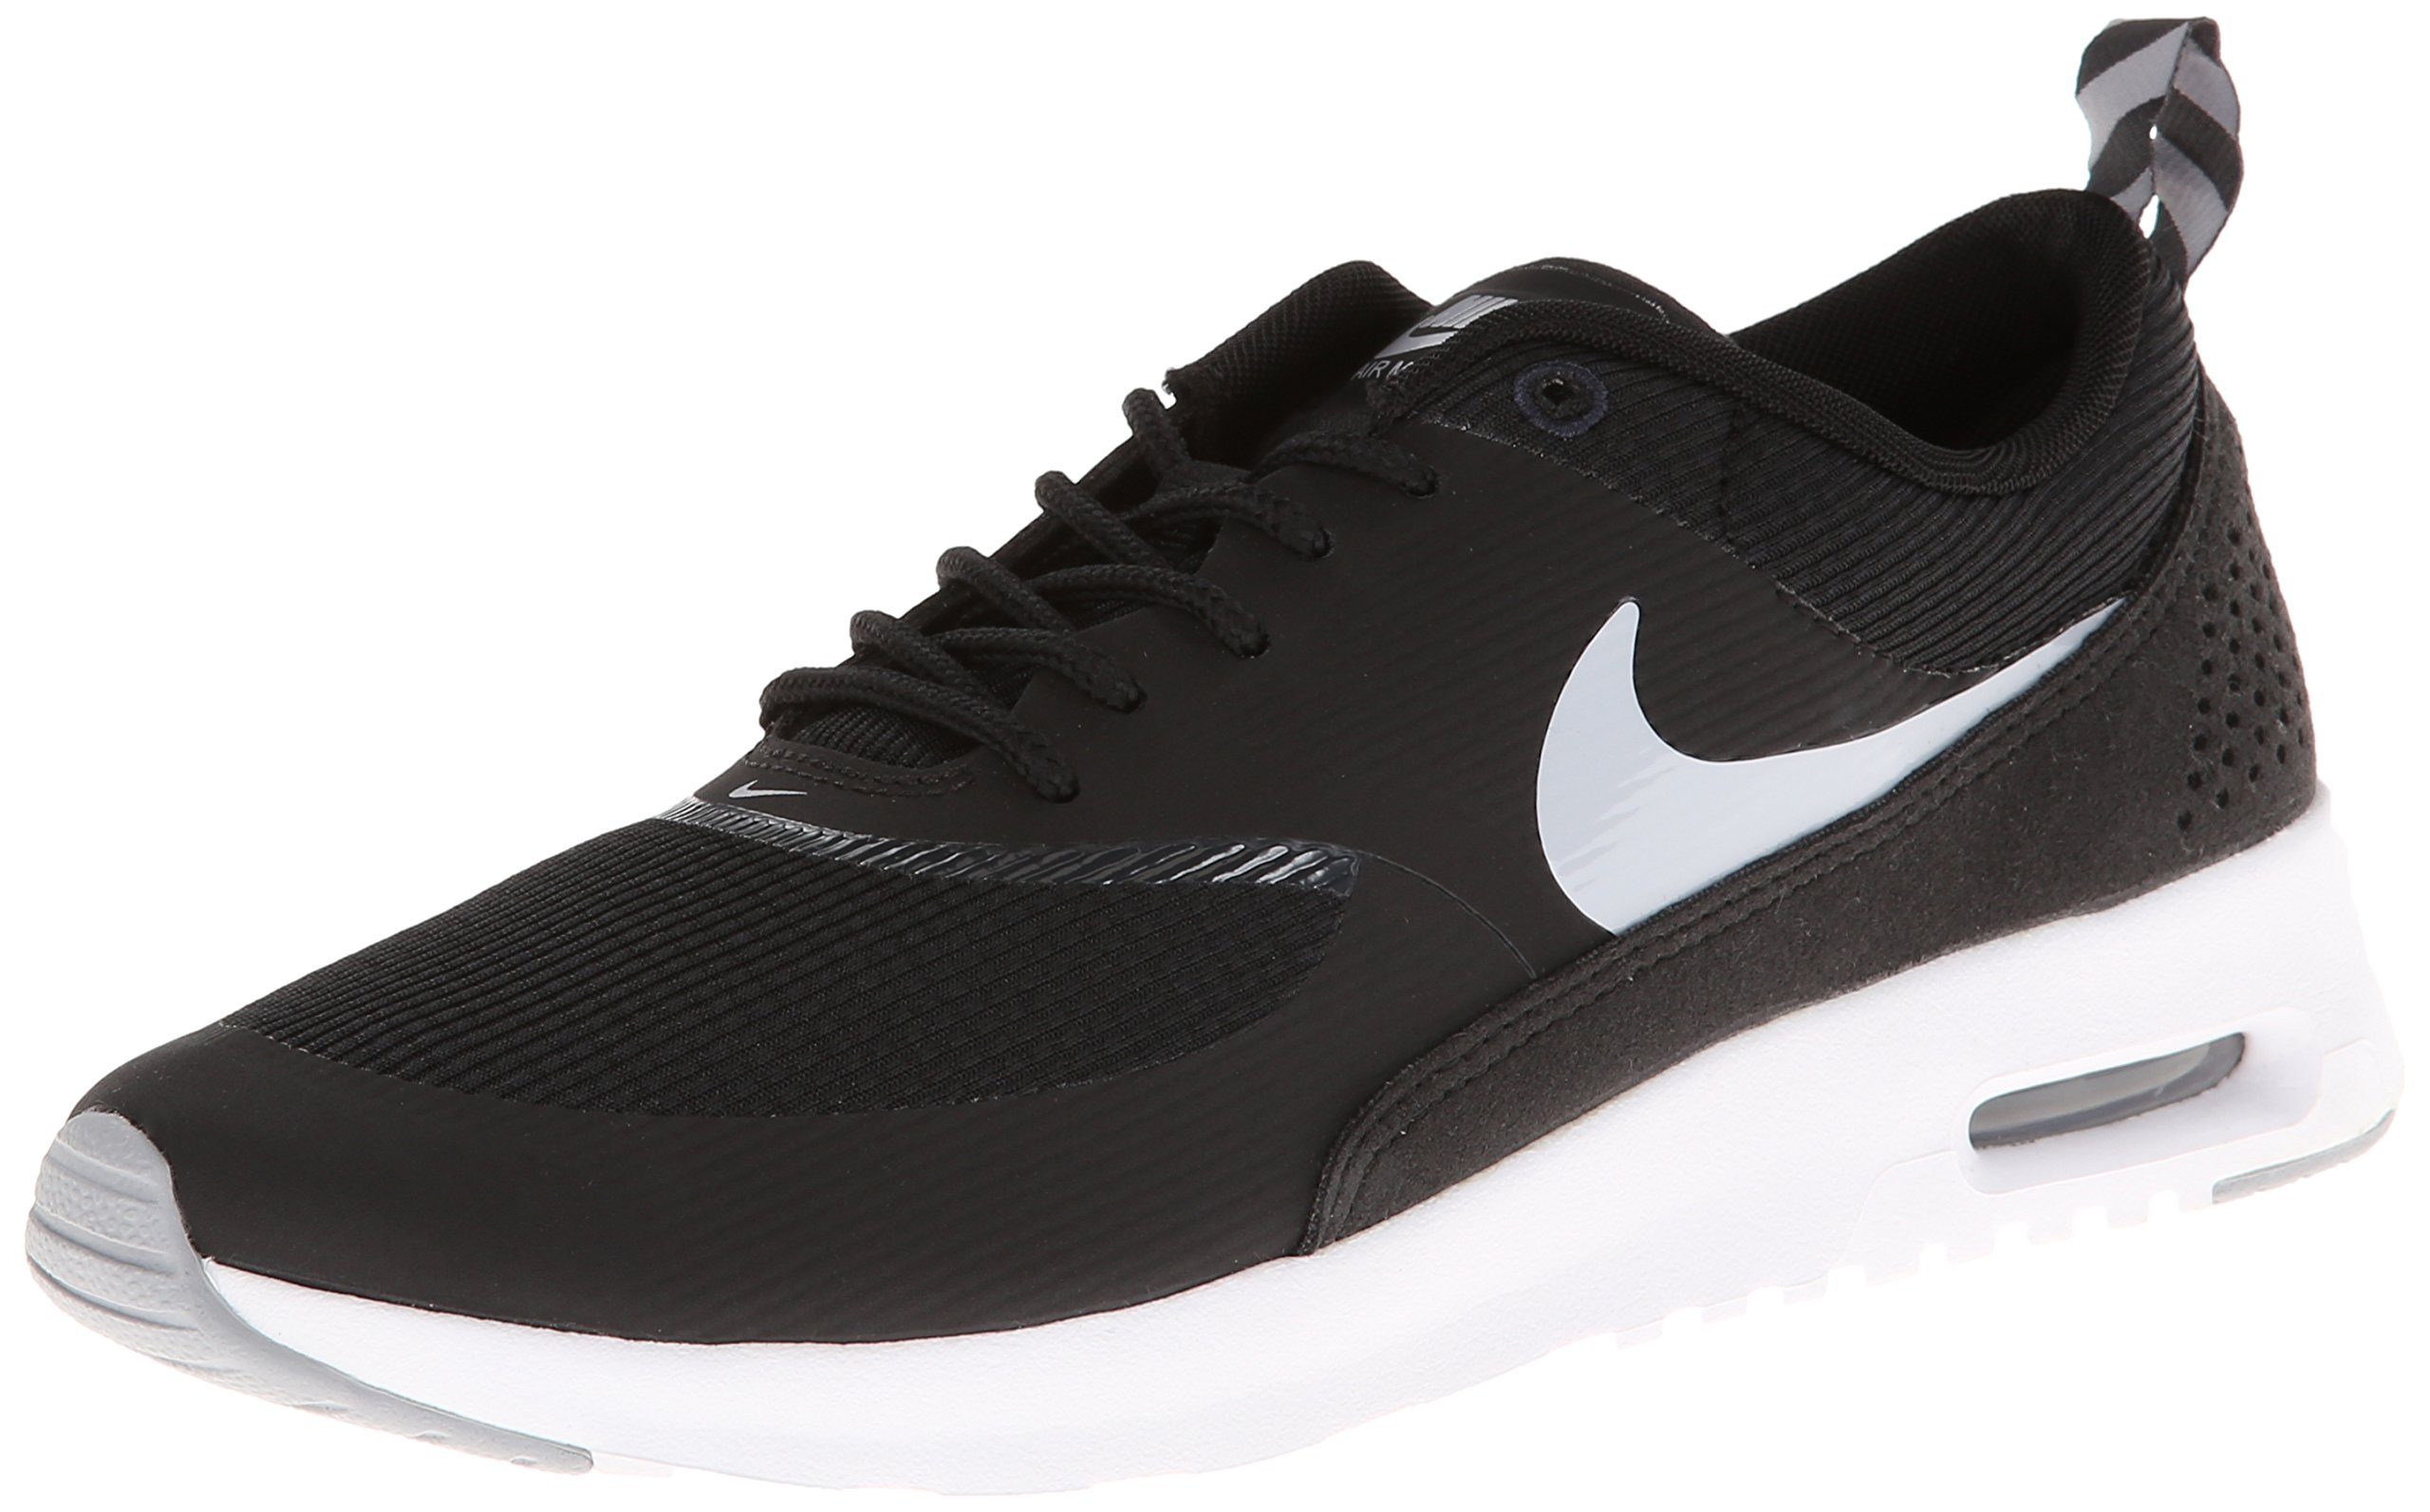 [599409-007] NIKE AIR MAX THEA WMNS WOMENS SNEAKERS NIKEBLACK WOLF GREY ANTHRACITE WHITEM